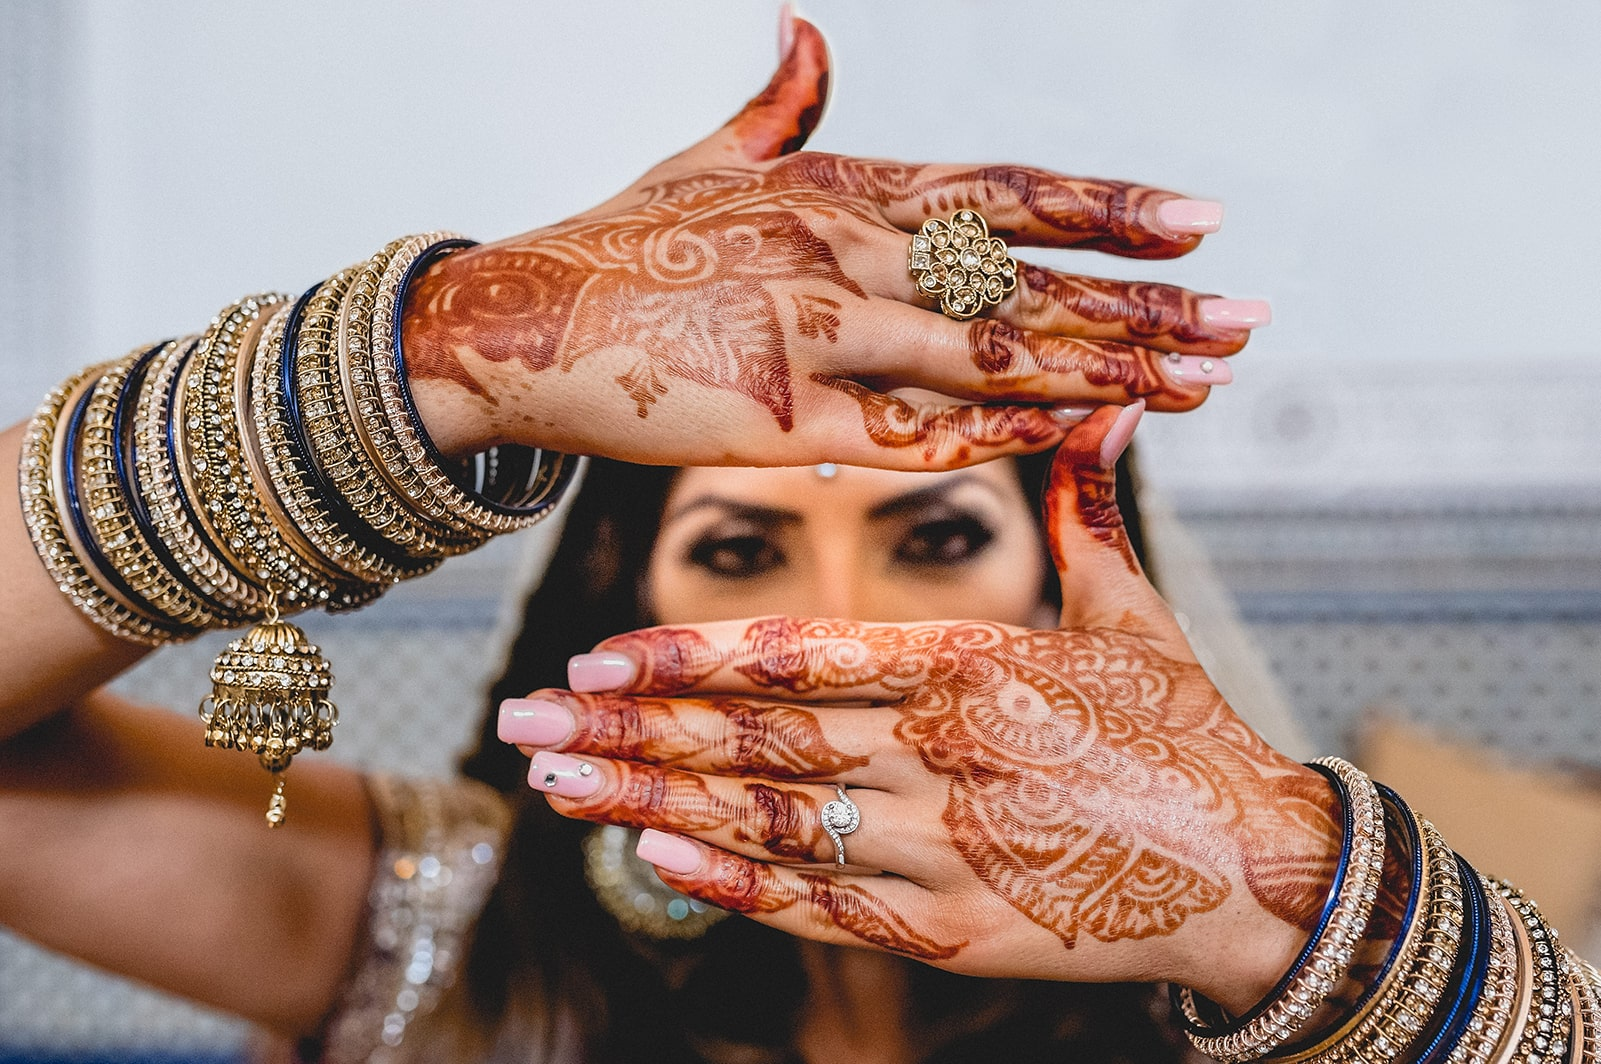 Moroccan Bride holding her henna painted hands in front of her face so only her eyes show